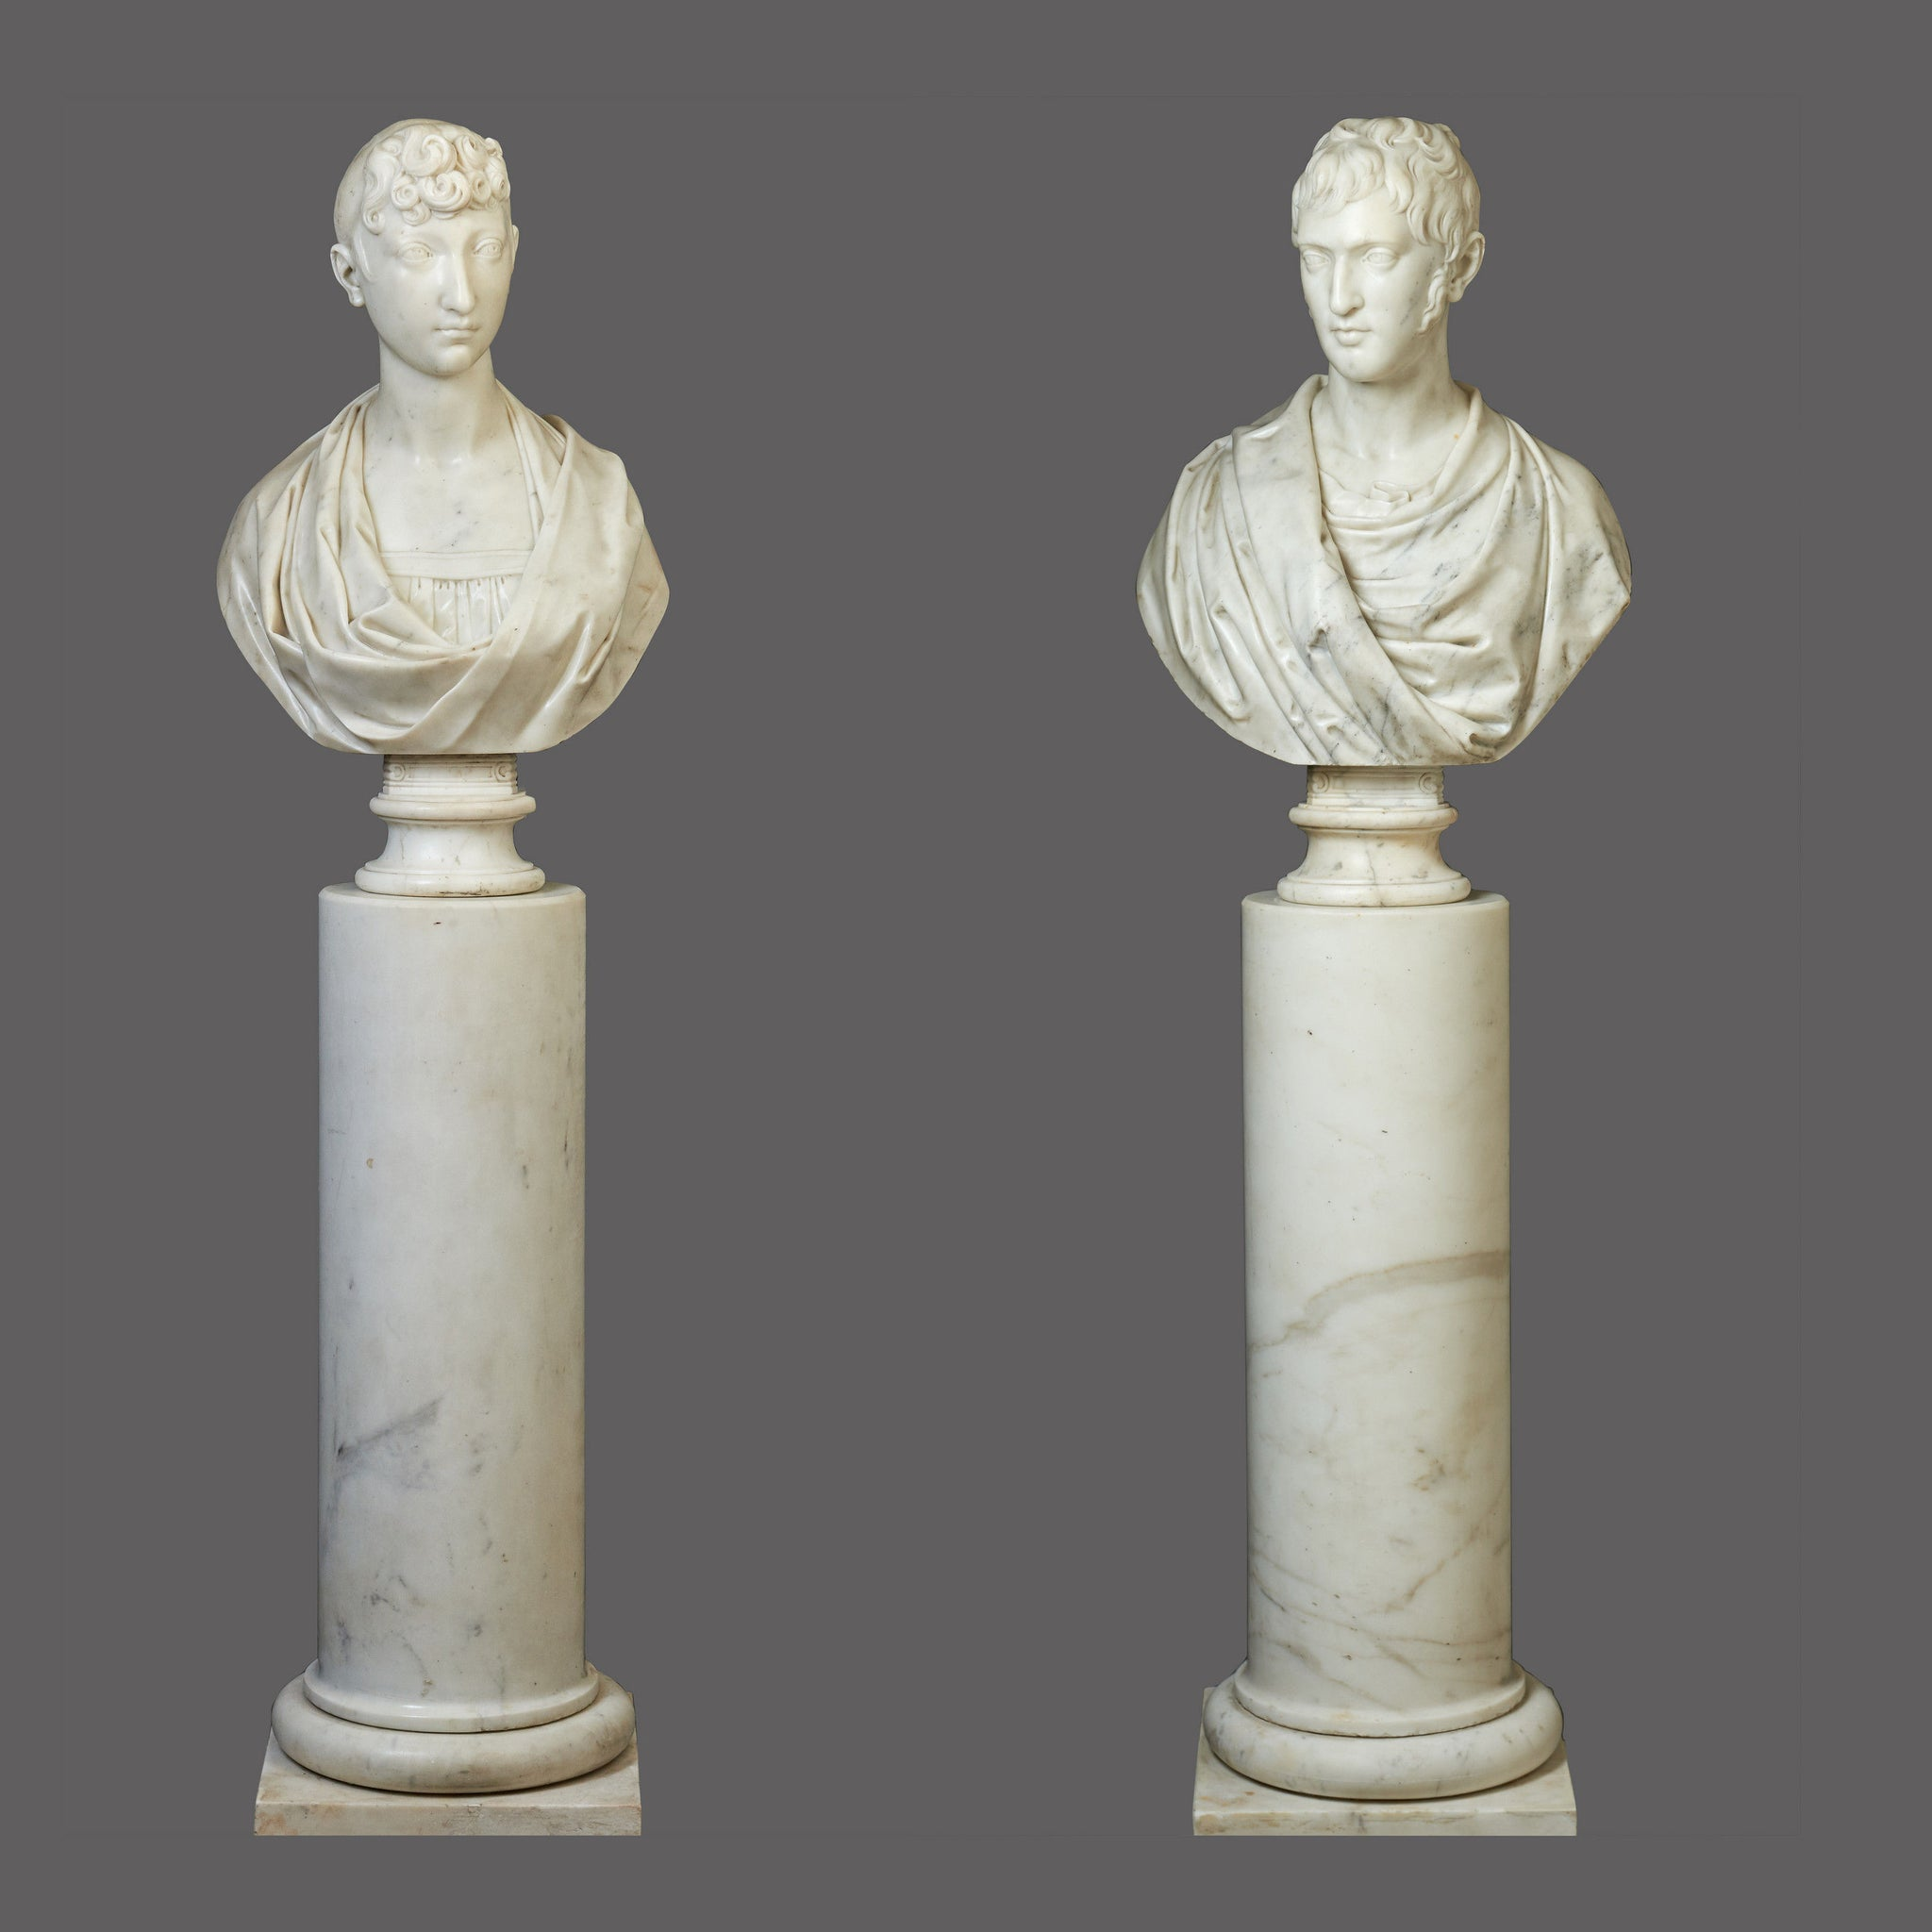 Exceptional Pair of Marble Busts of Pauline Bonaparte & General Charles Leclerc on original columns